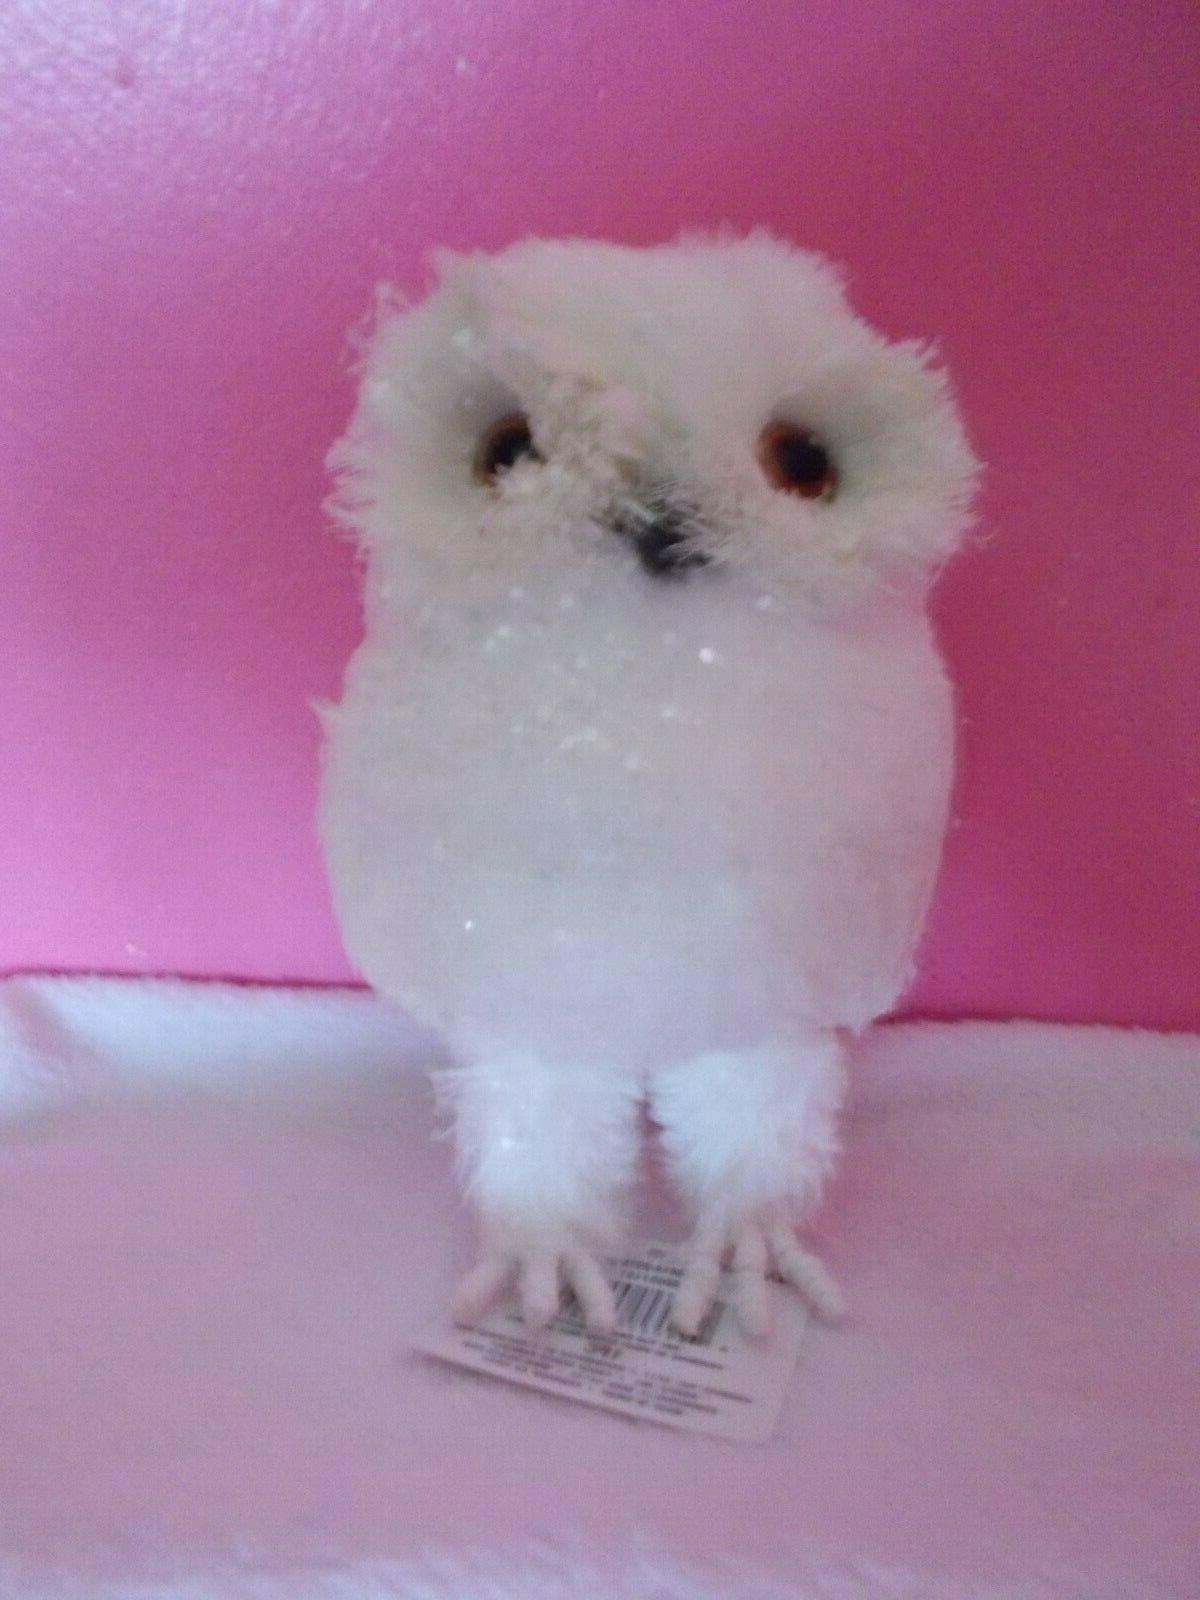 nwt sparkly faux fur white owl standing